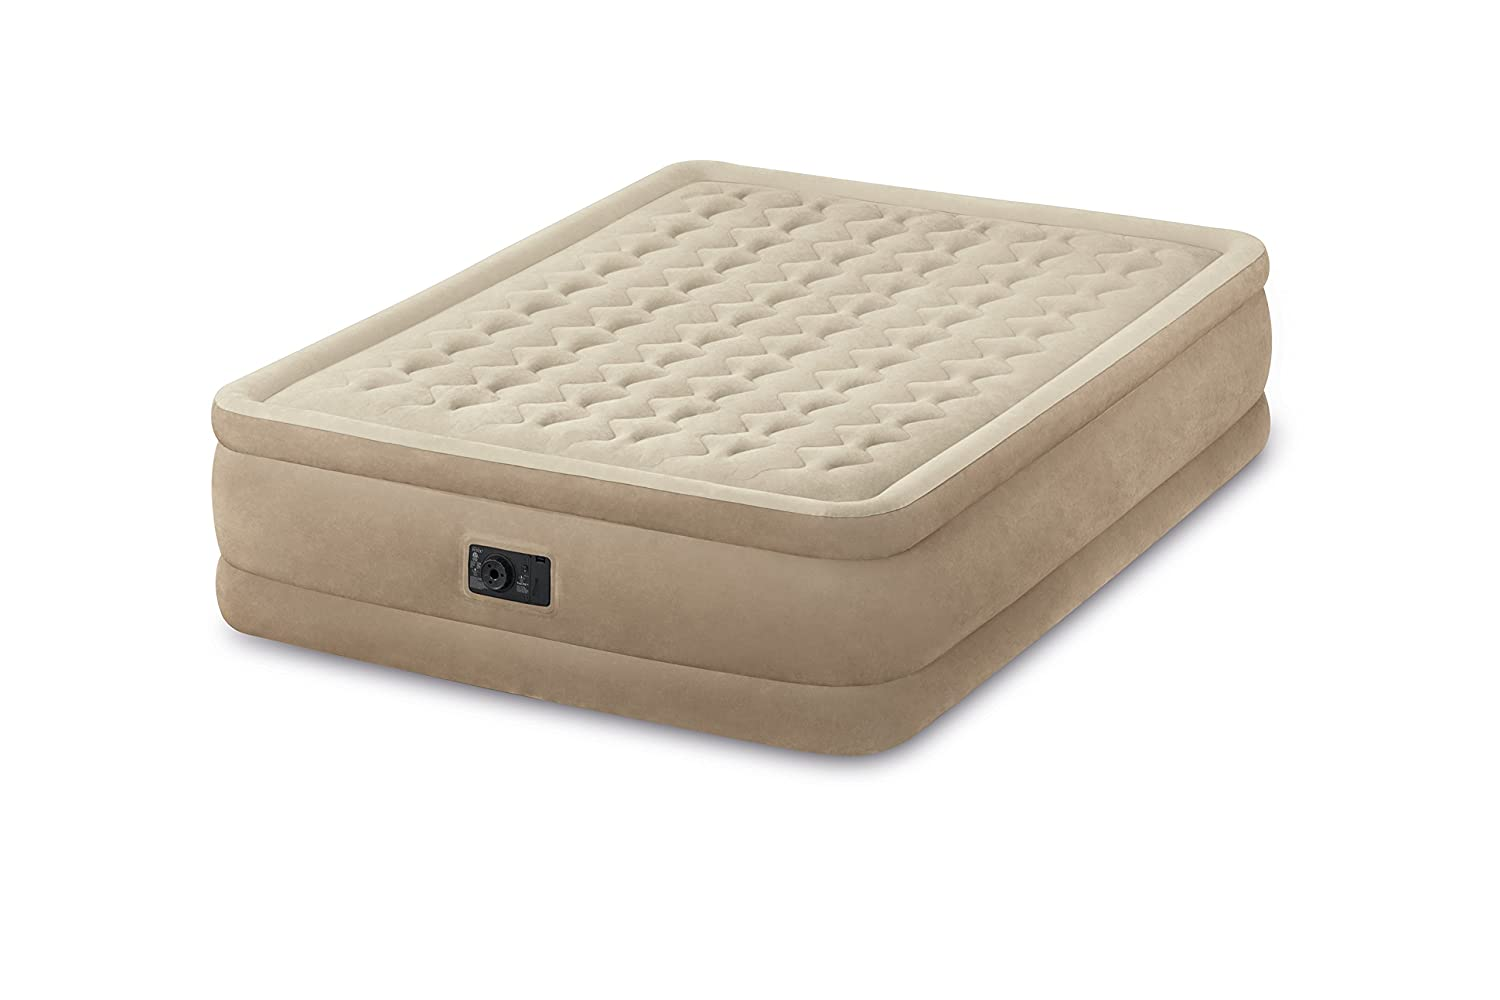 Intex Queen Ultra Plush Fiber-Tech Airbed Air Mattress Bed with Built-In Pump 64457E